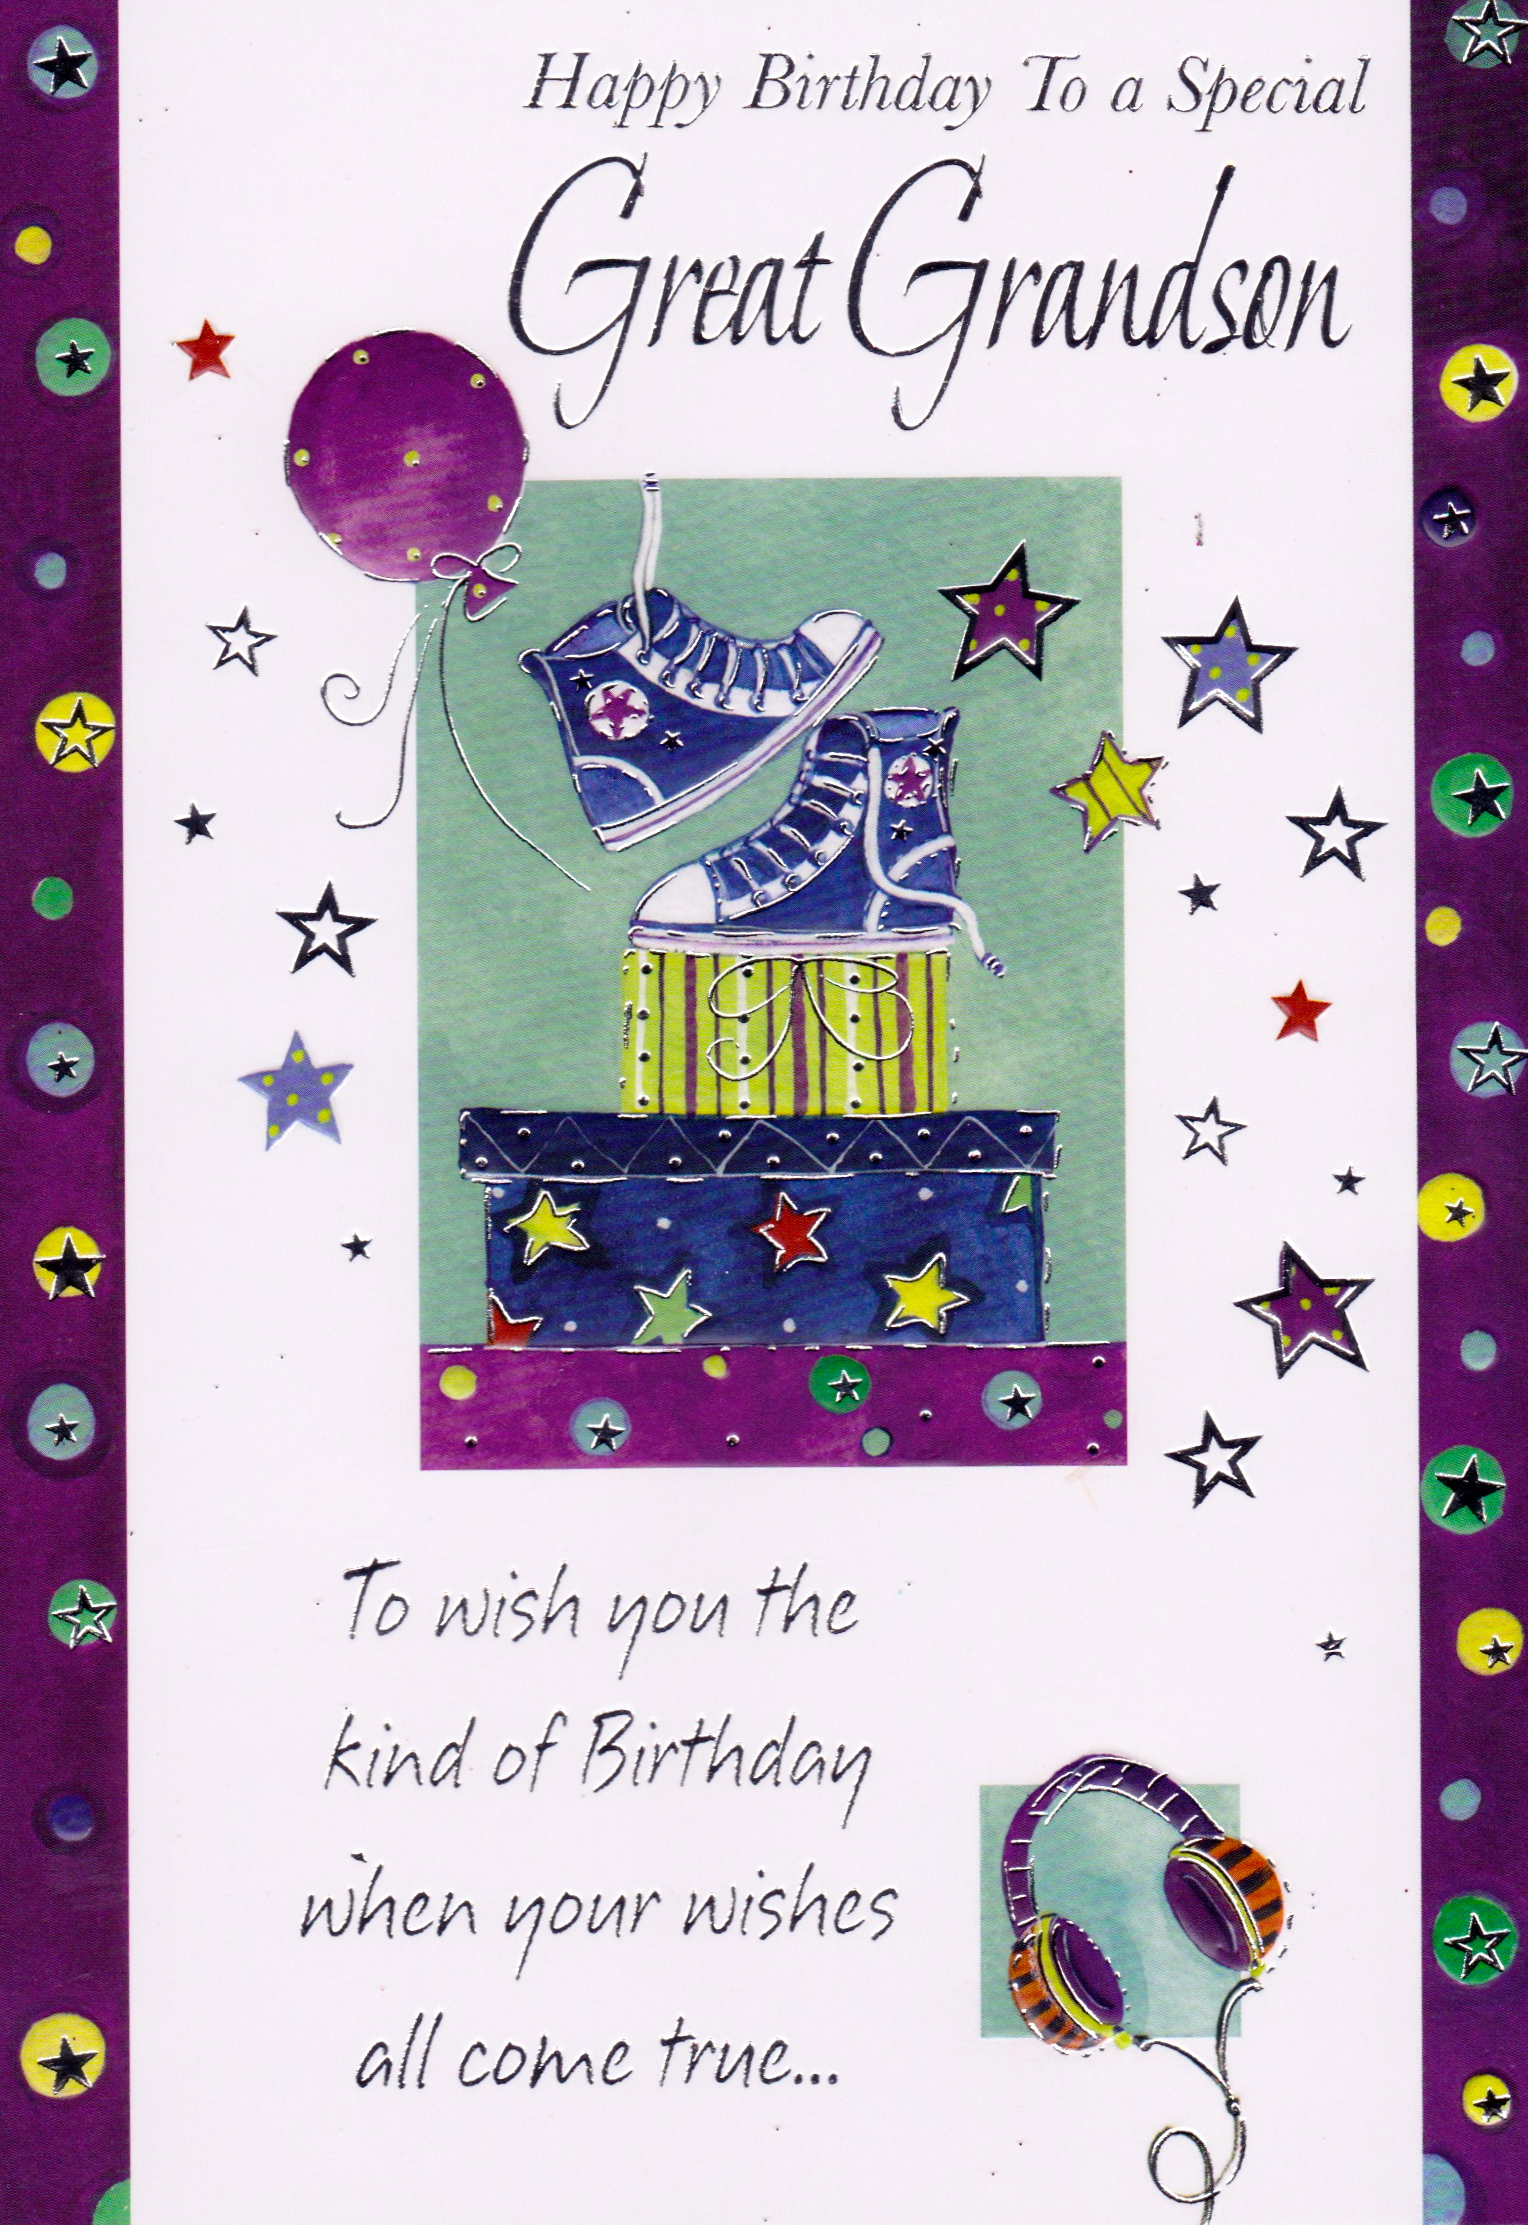 grandson birthday wishes greeting cards ; 011fc3136909e2ec8e05697159c9ef82